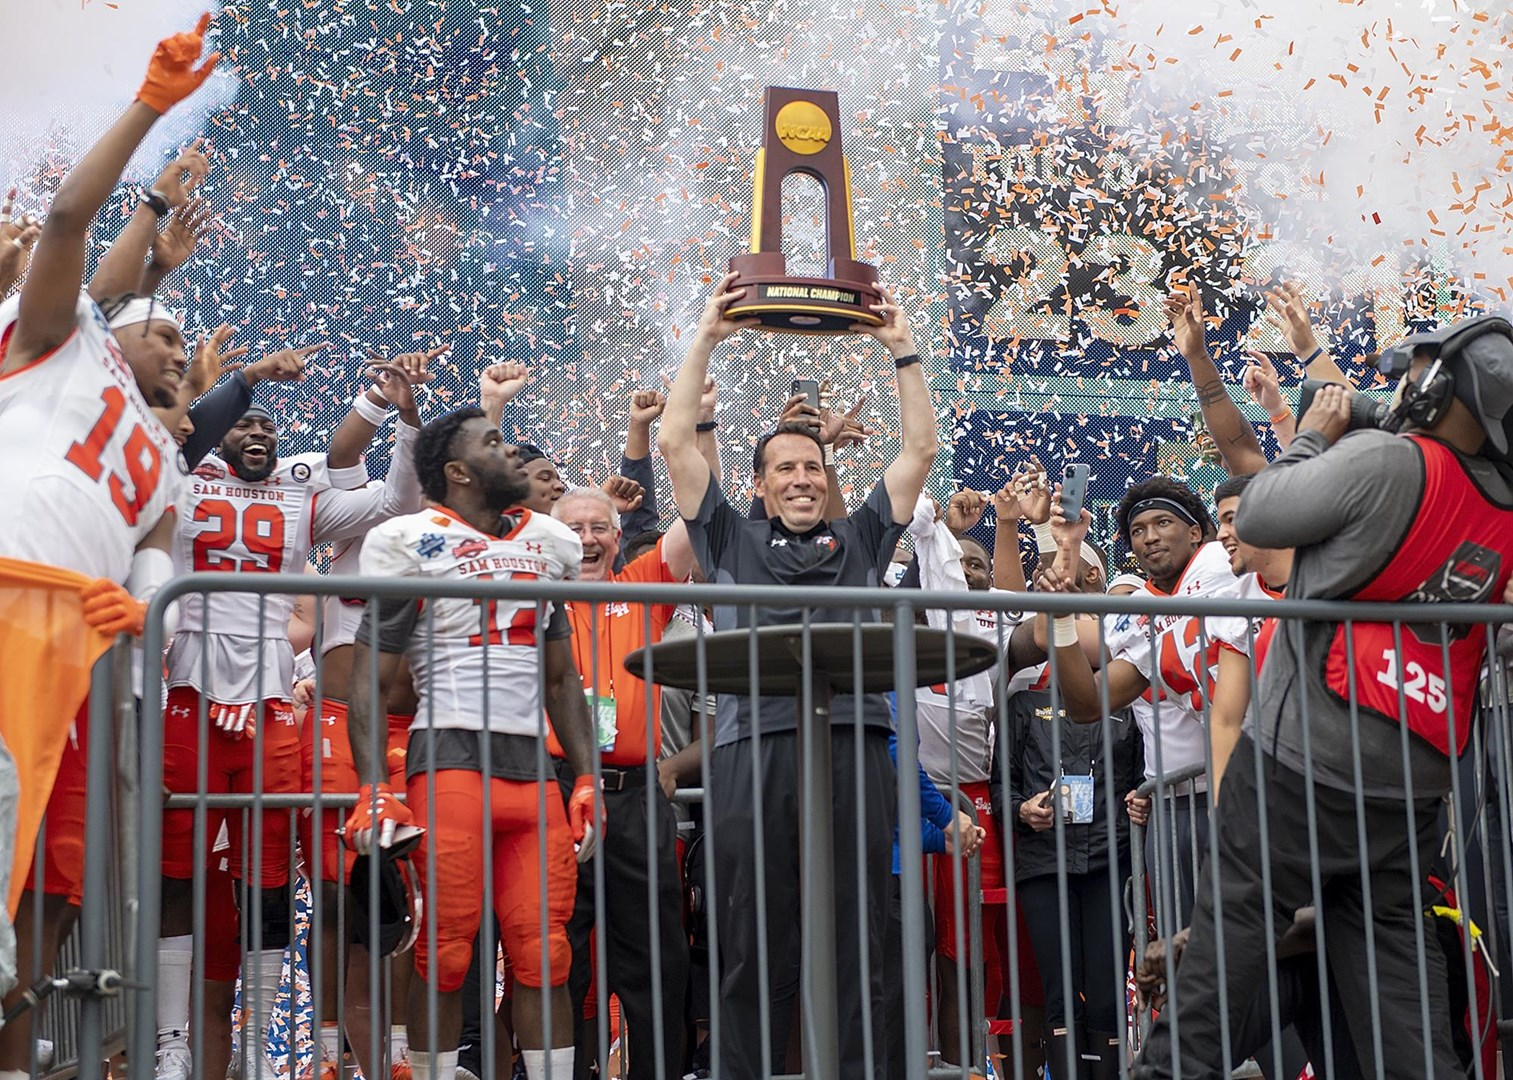 Keeler and the team celebrate national title